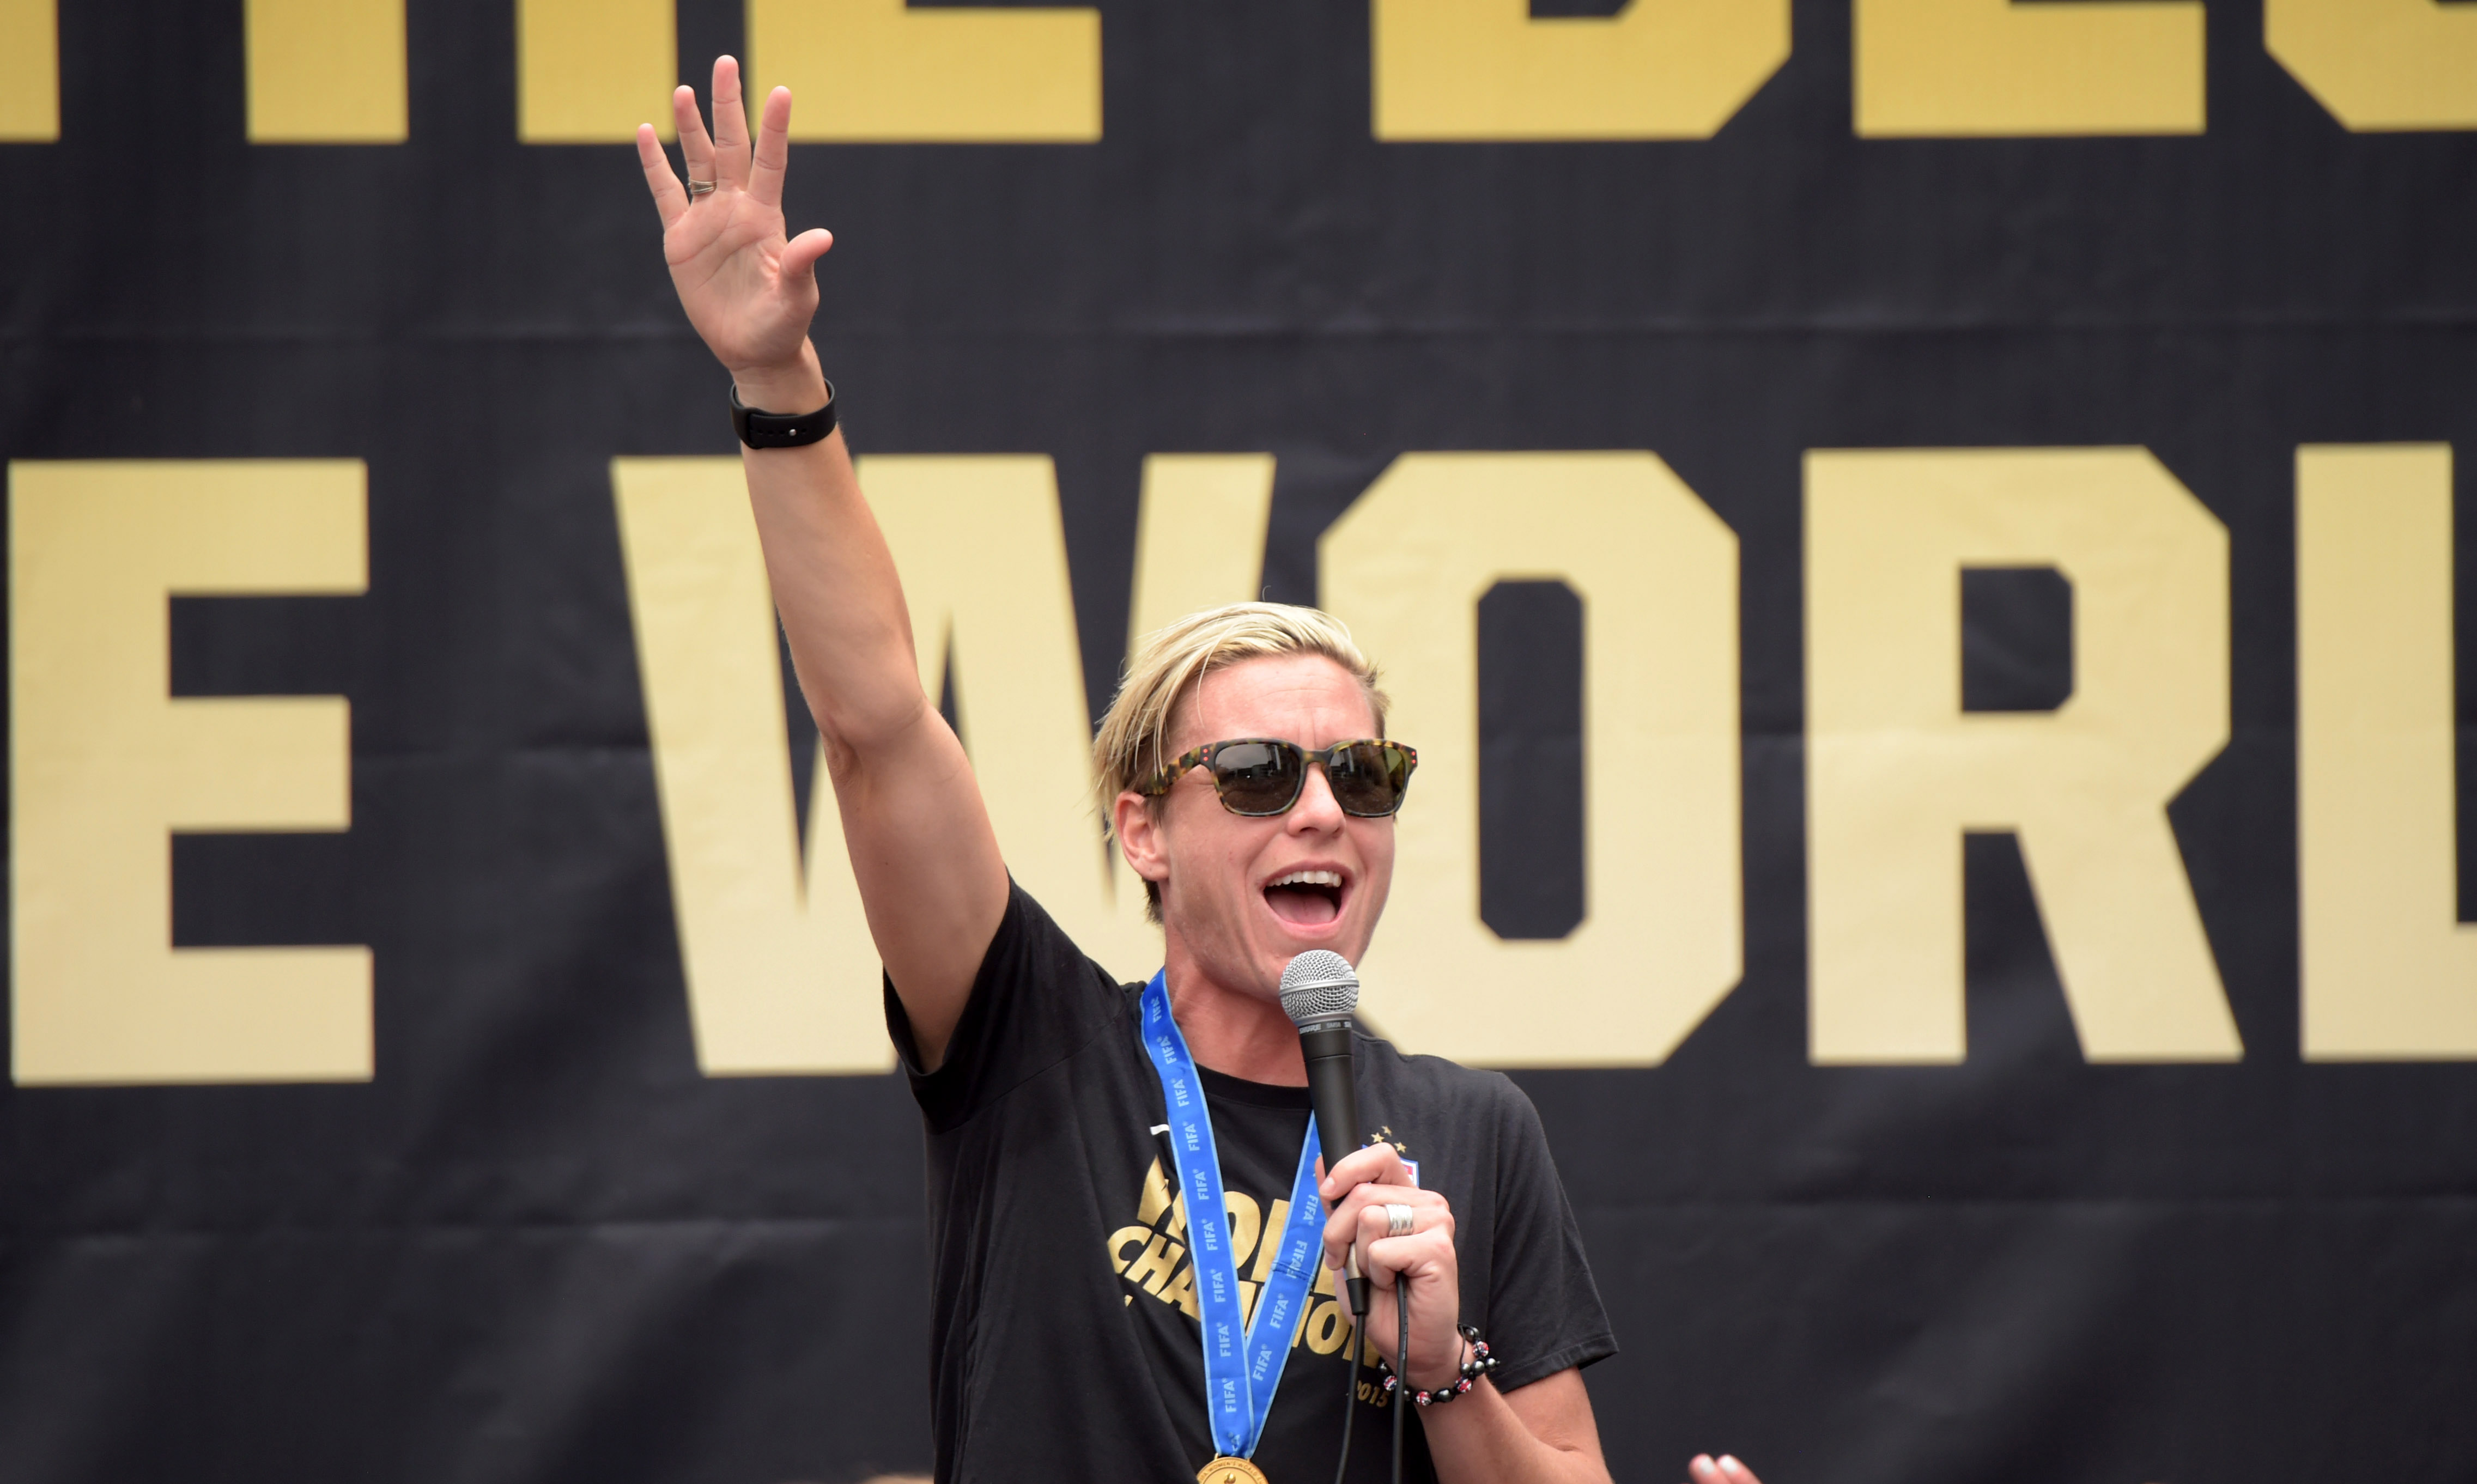 Abby Wambach addresses the crowd at a rally in Los Angeles for the World Cup champion U.S. women's soccer team.  (Photo: Kirby Lee, USA TODAY Sports)